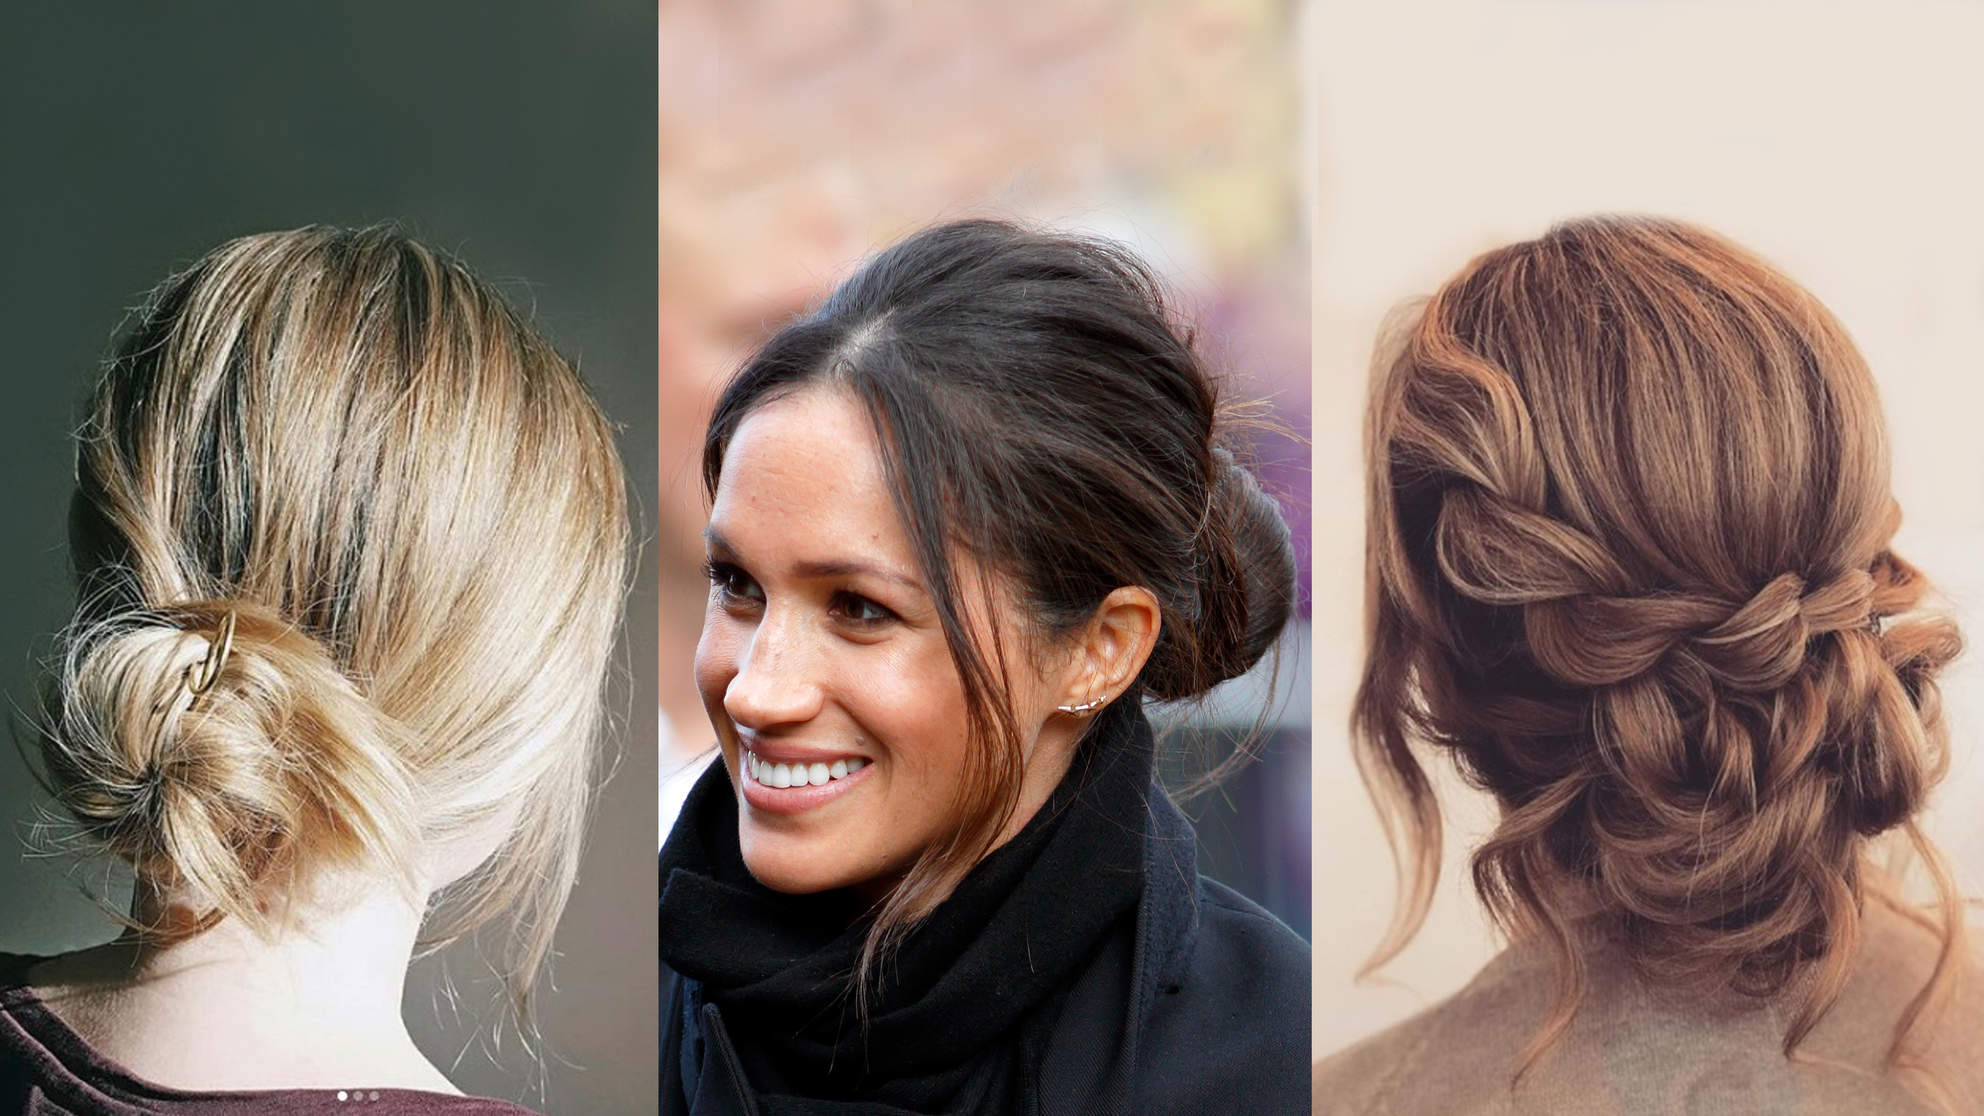 Messy Bun Ideas To Get An Updo Like Meghan Markles Signature Style